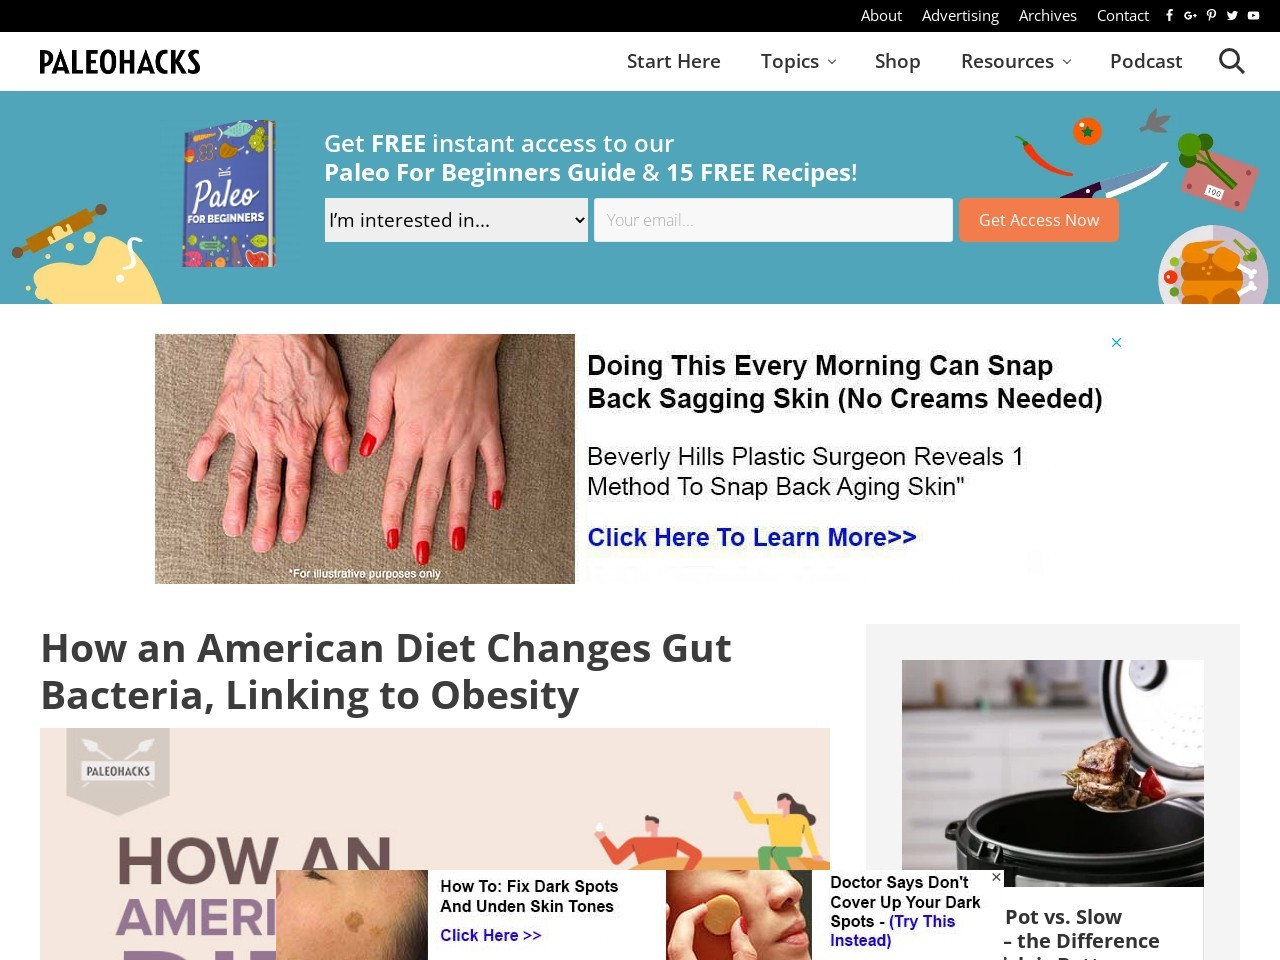 How an American Diet Changes Gut Bacteria, Linking to Obesity